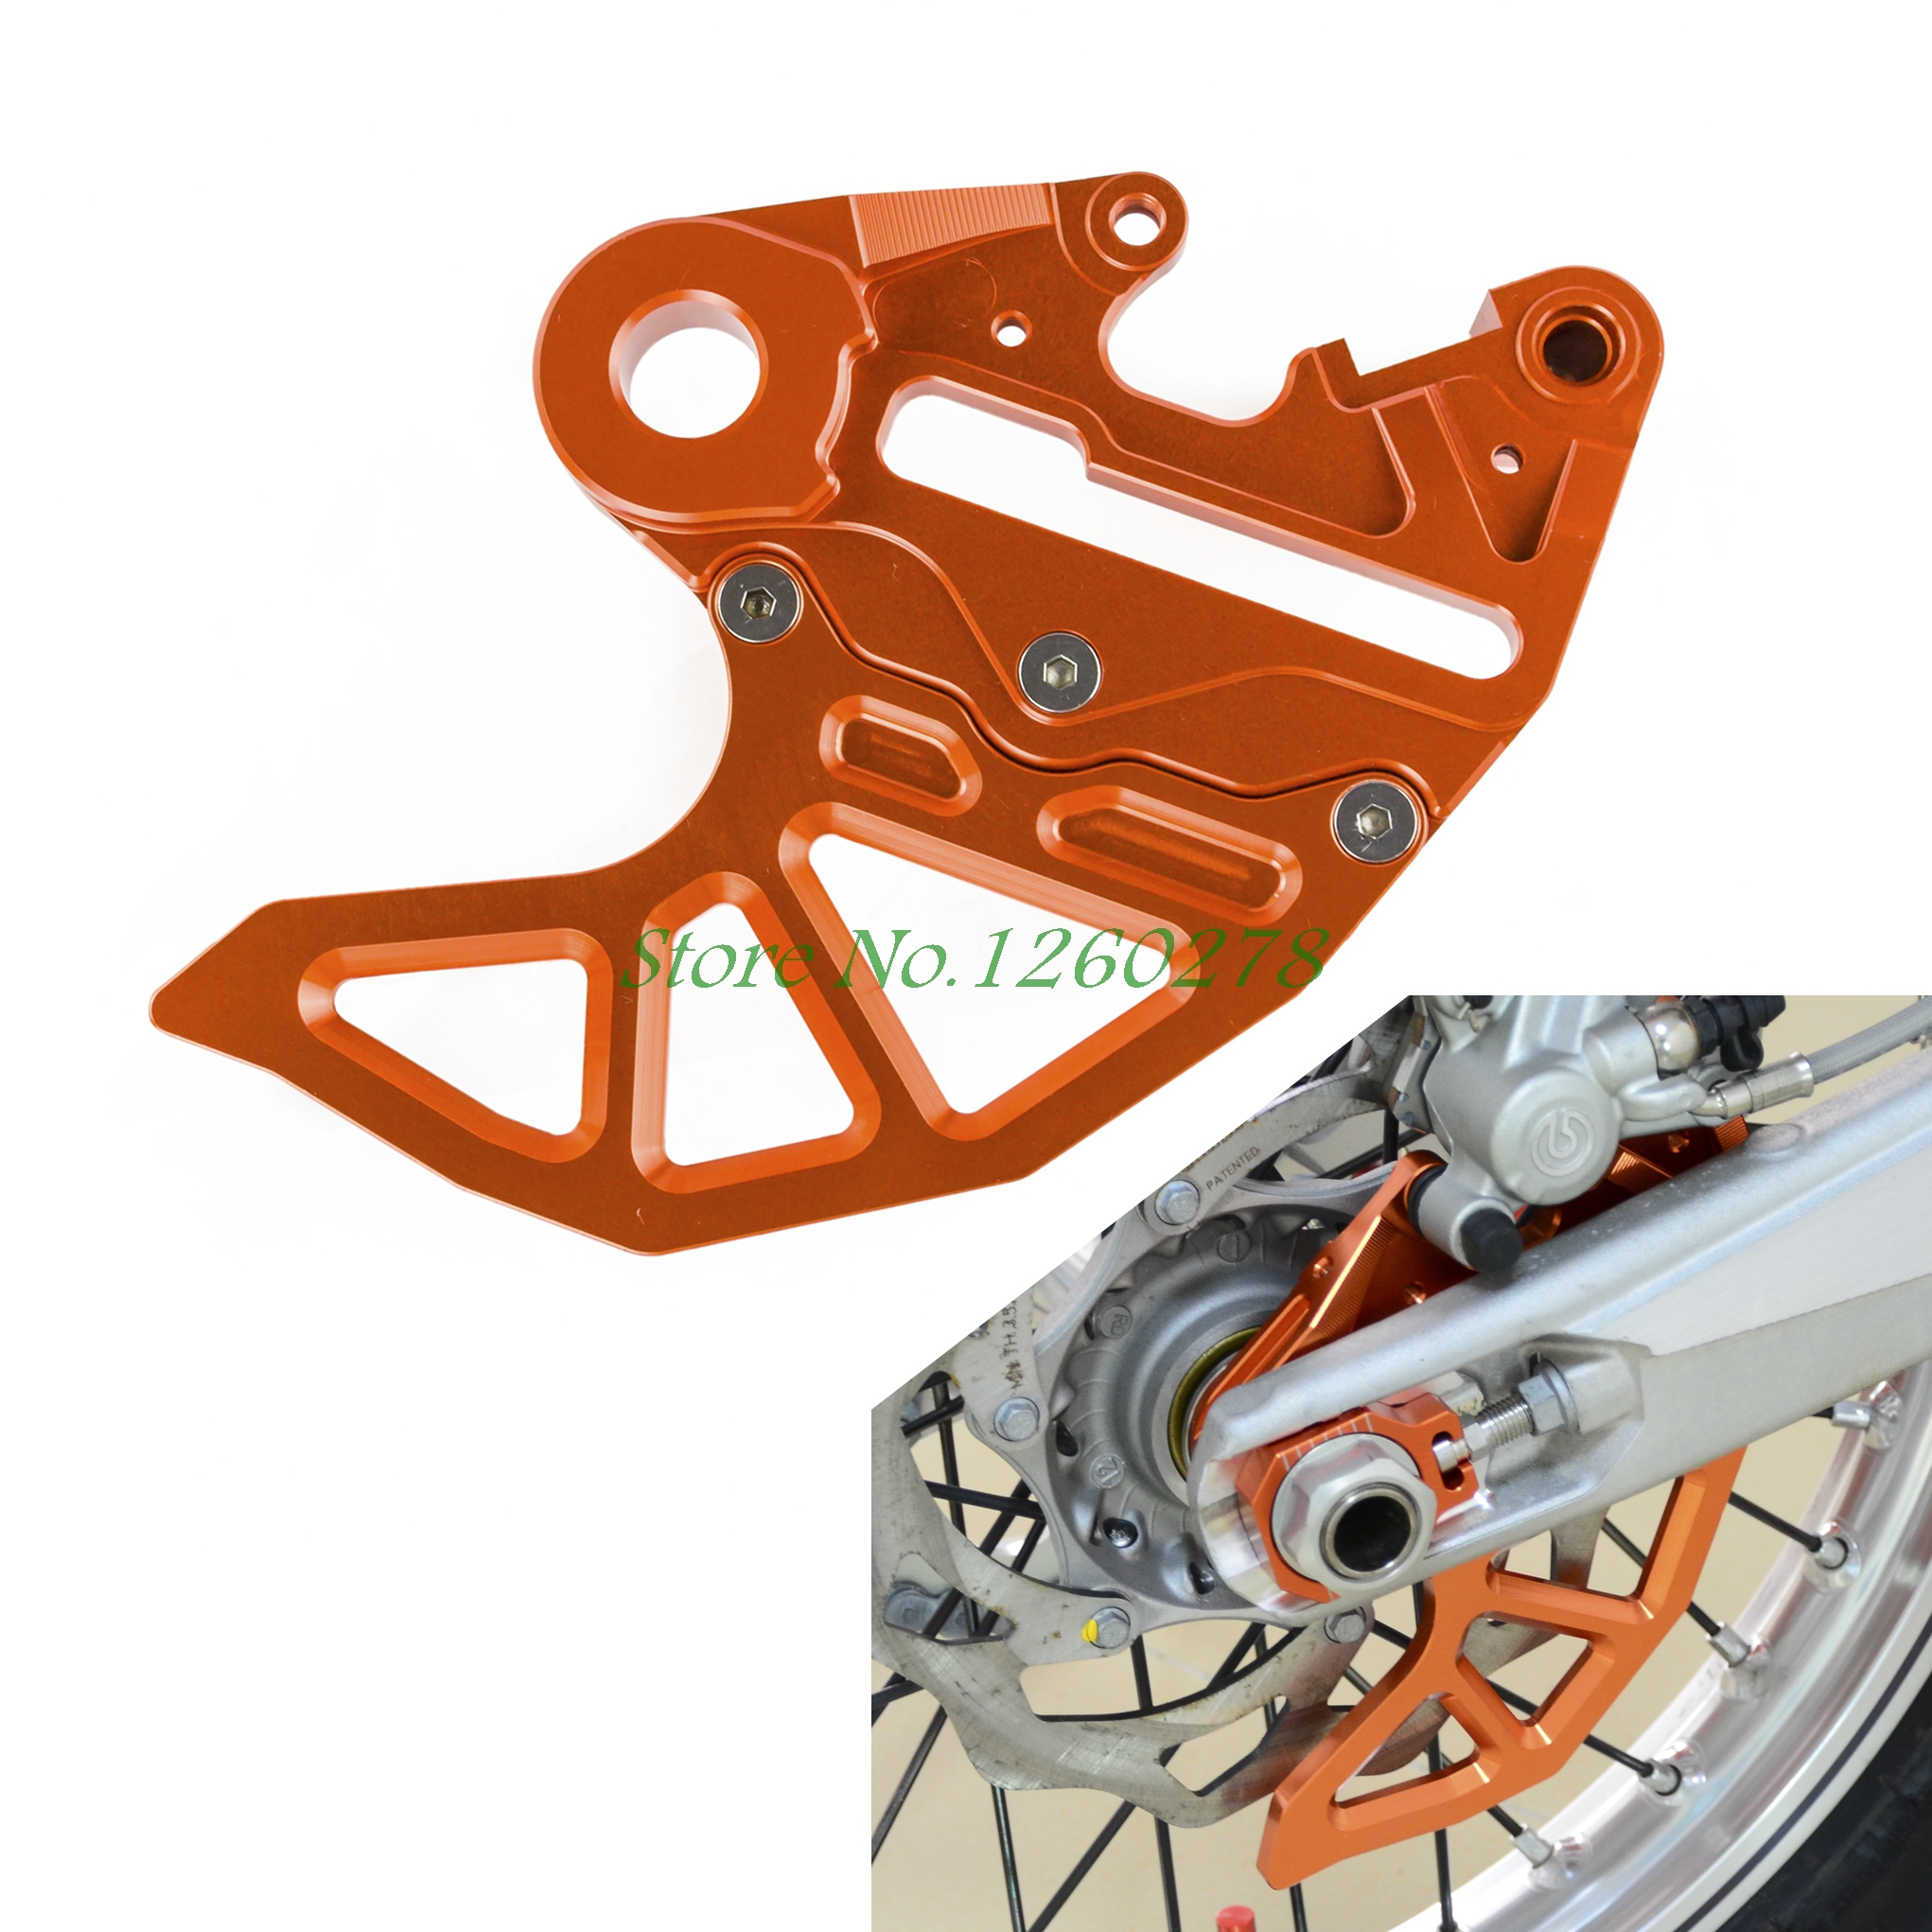 Caliper Support Rear Brake Disc Guard For KTM 125 200 250 300 390 450 530 SX/SX-F EXC/EXC-F/XC-W/XCF-W motorcycle front and rear brake pads for ktm exc r450 2008 sx f 450 usd 2003 2008 xc f xcr w 450 2008 black brake disc pad